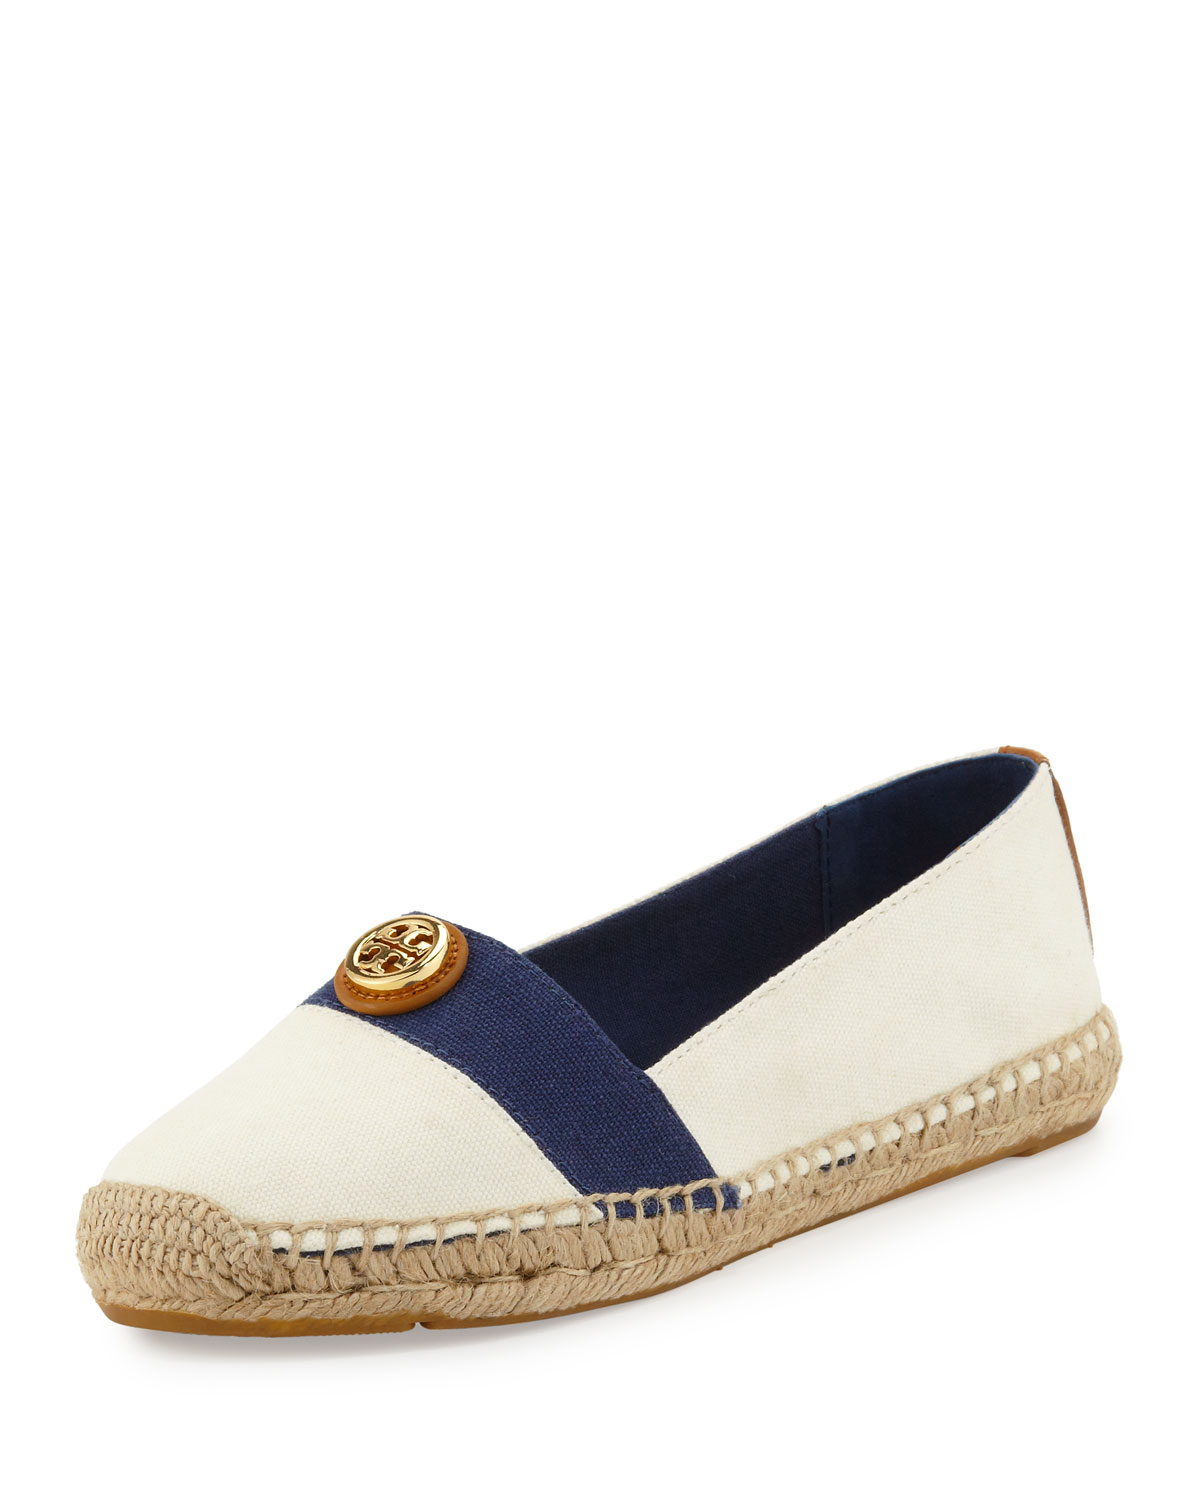 Lyst Tory Burch Beacher Canvas Espadrille Flat